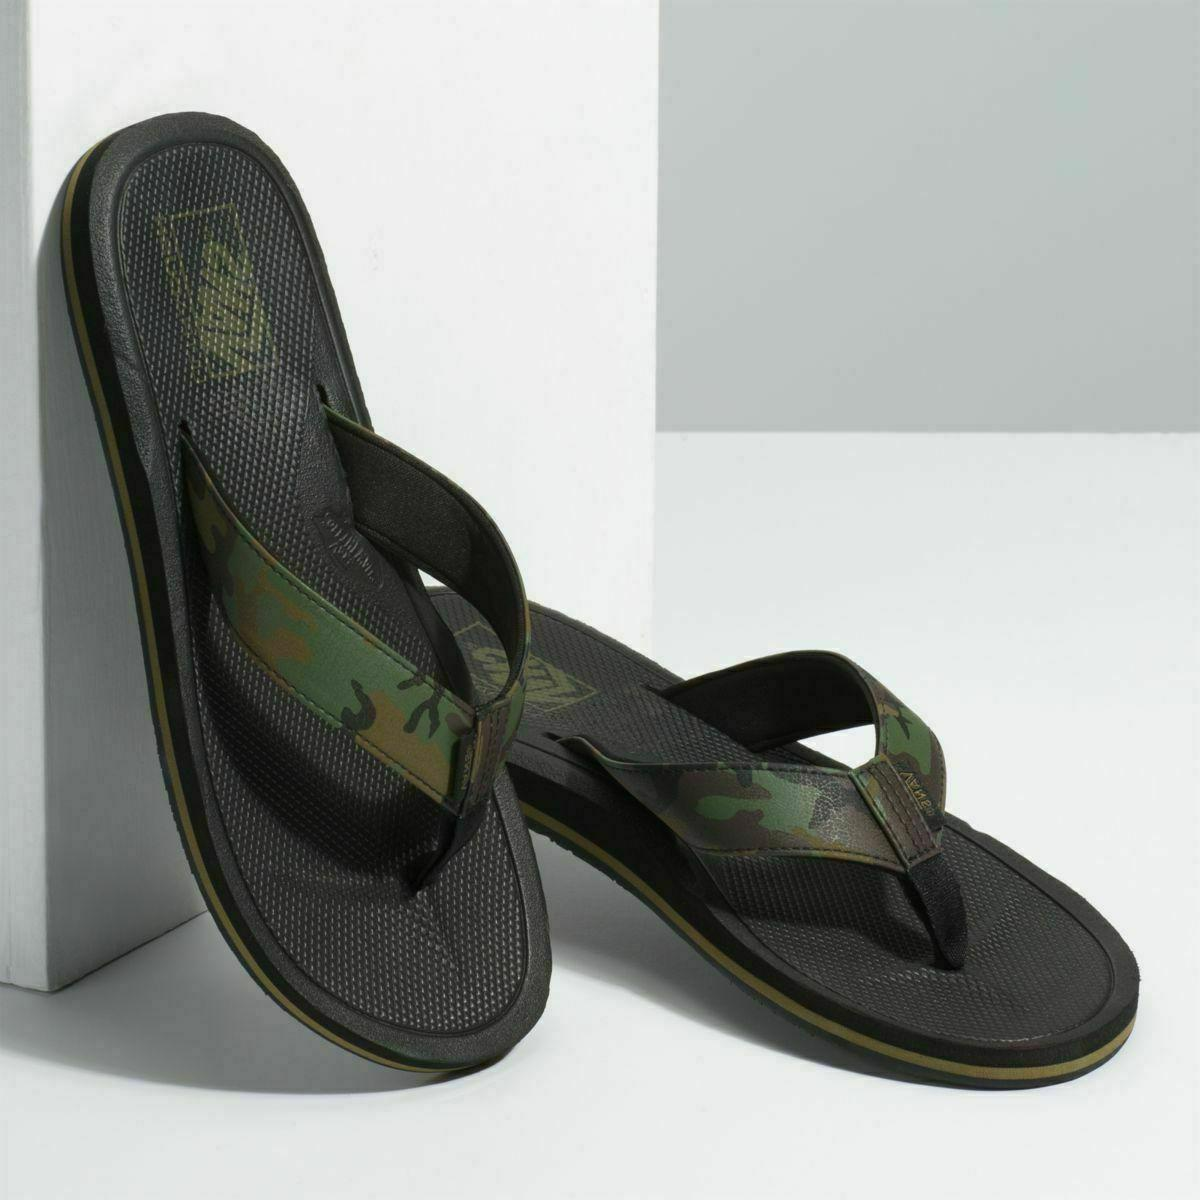 nwt nexpa synthetic flip flops sandals camo